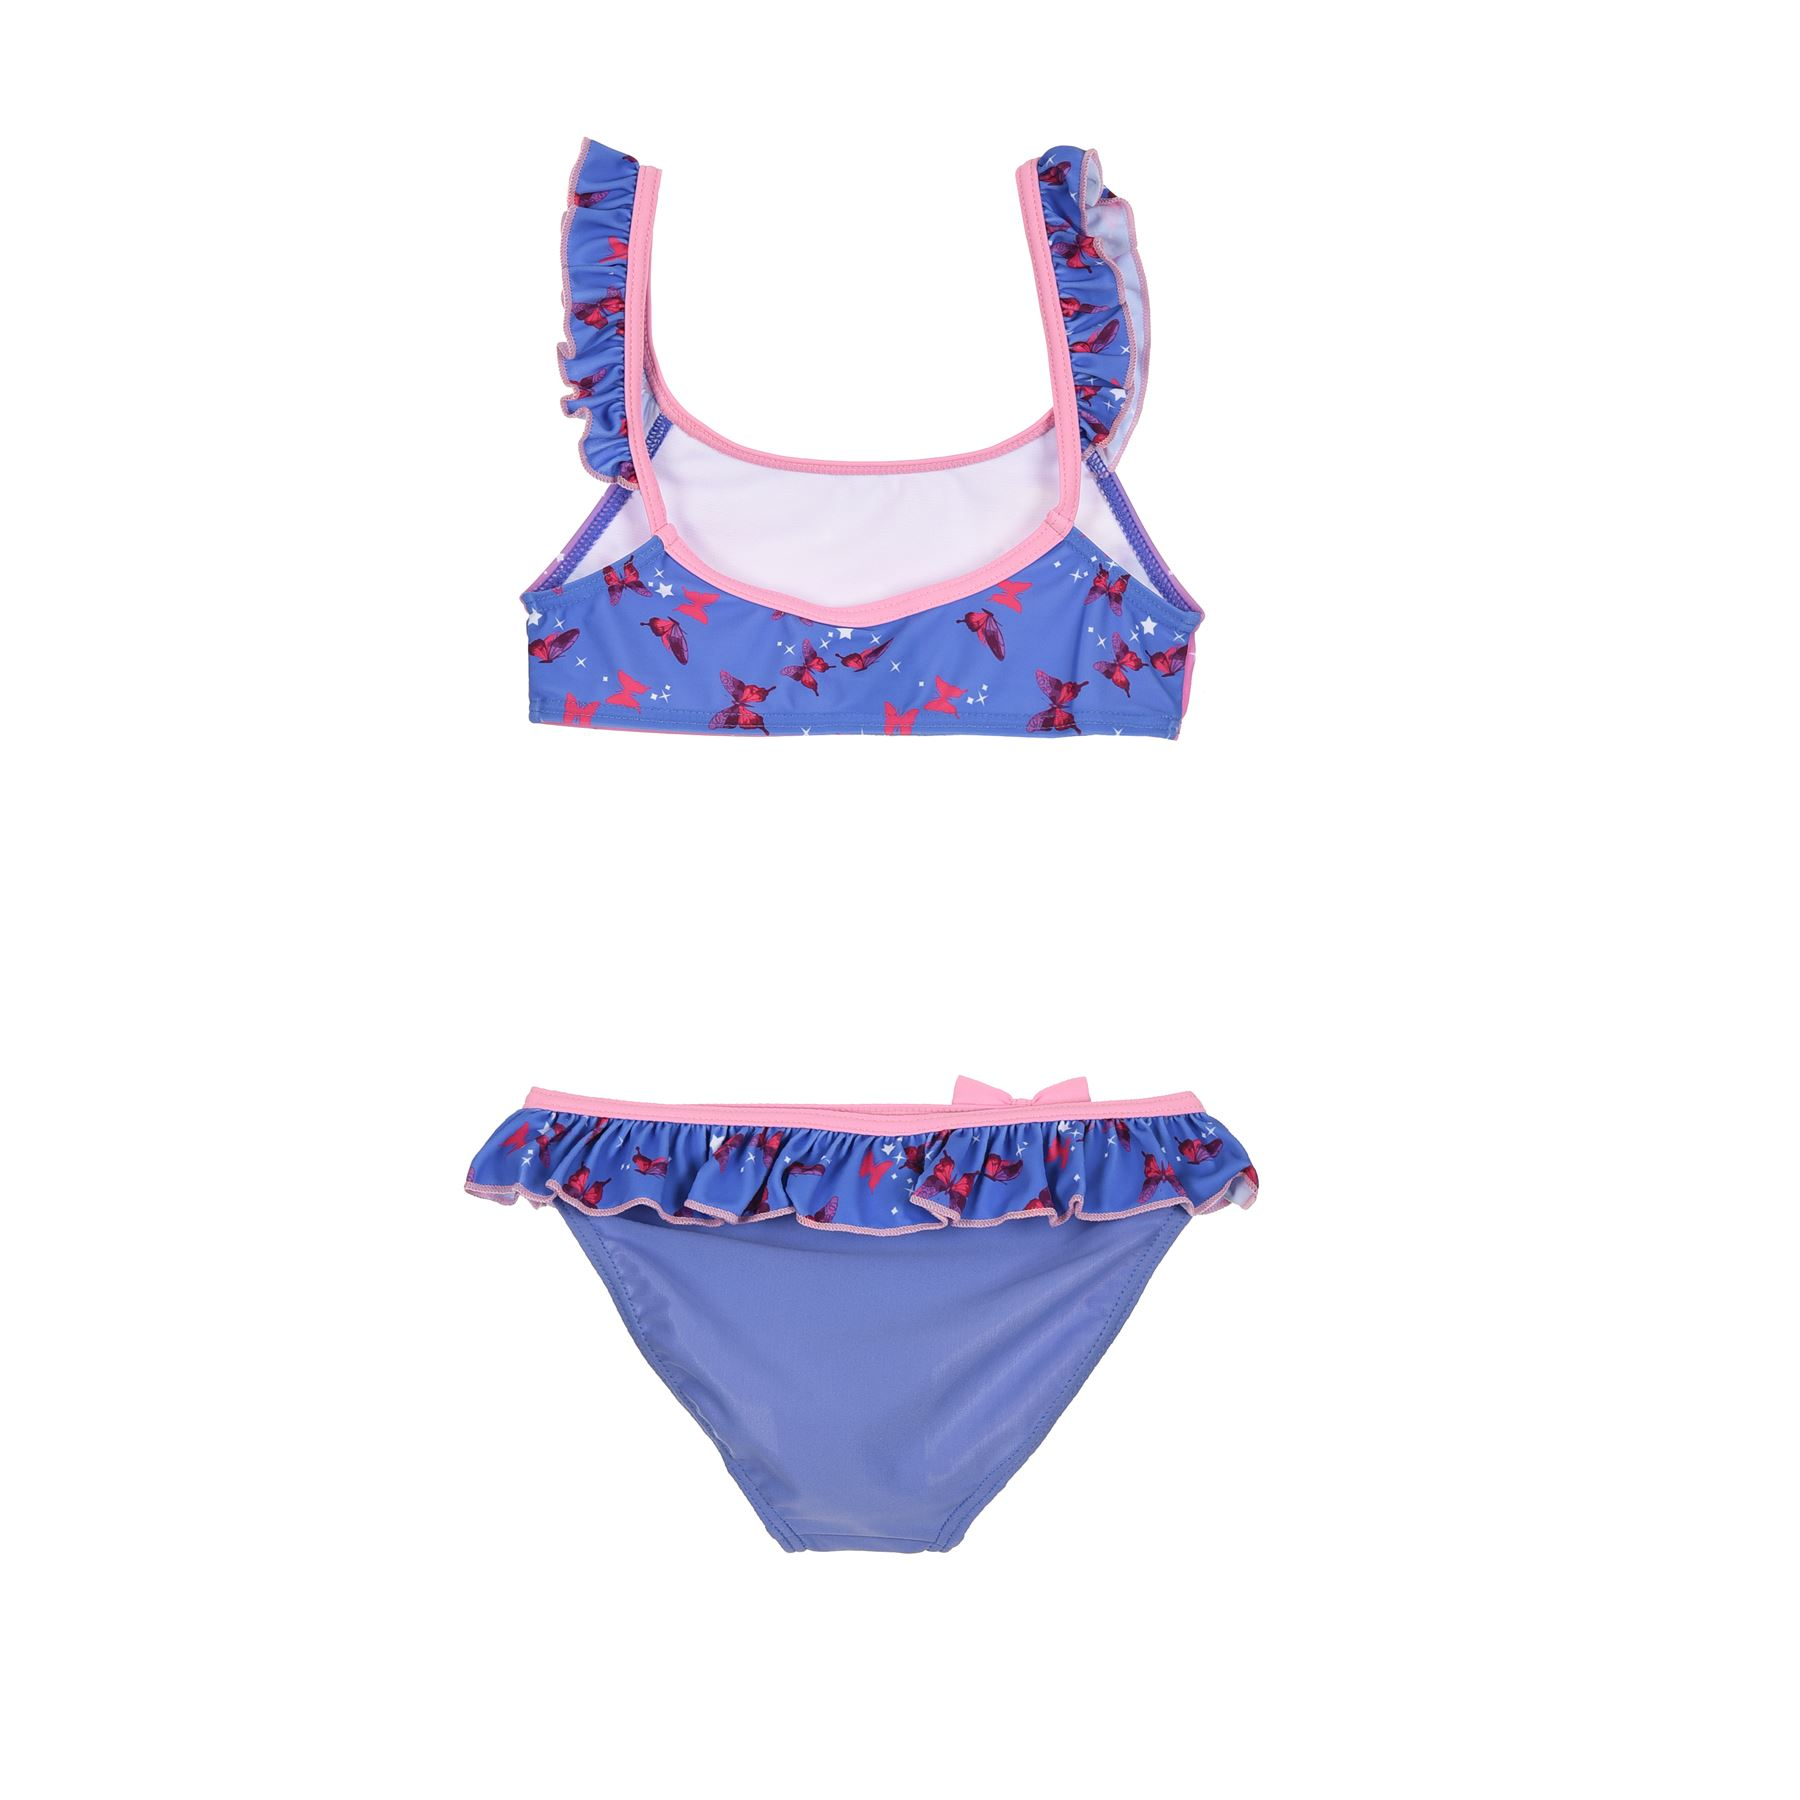 Girls-Bikini-Set-Childrens-Kids-Swimming-Costume-Age-3-8-Years thumbnail 18